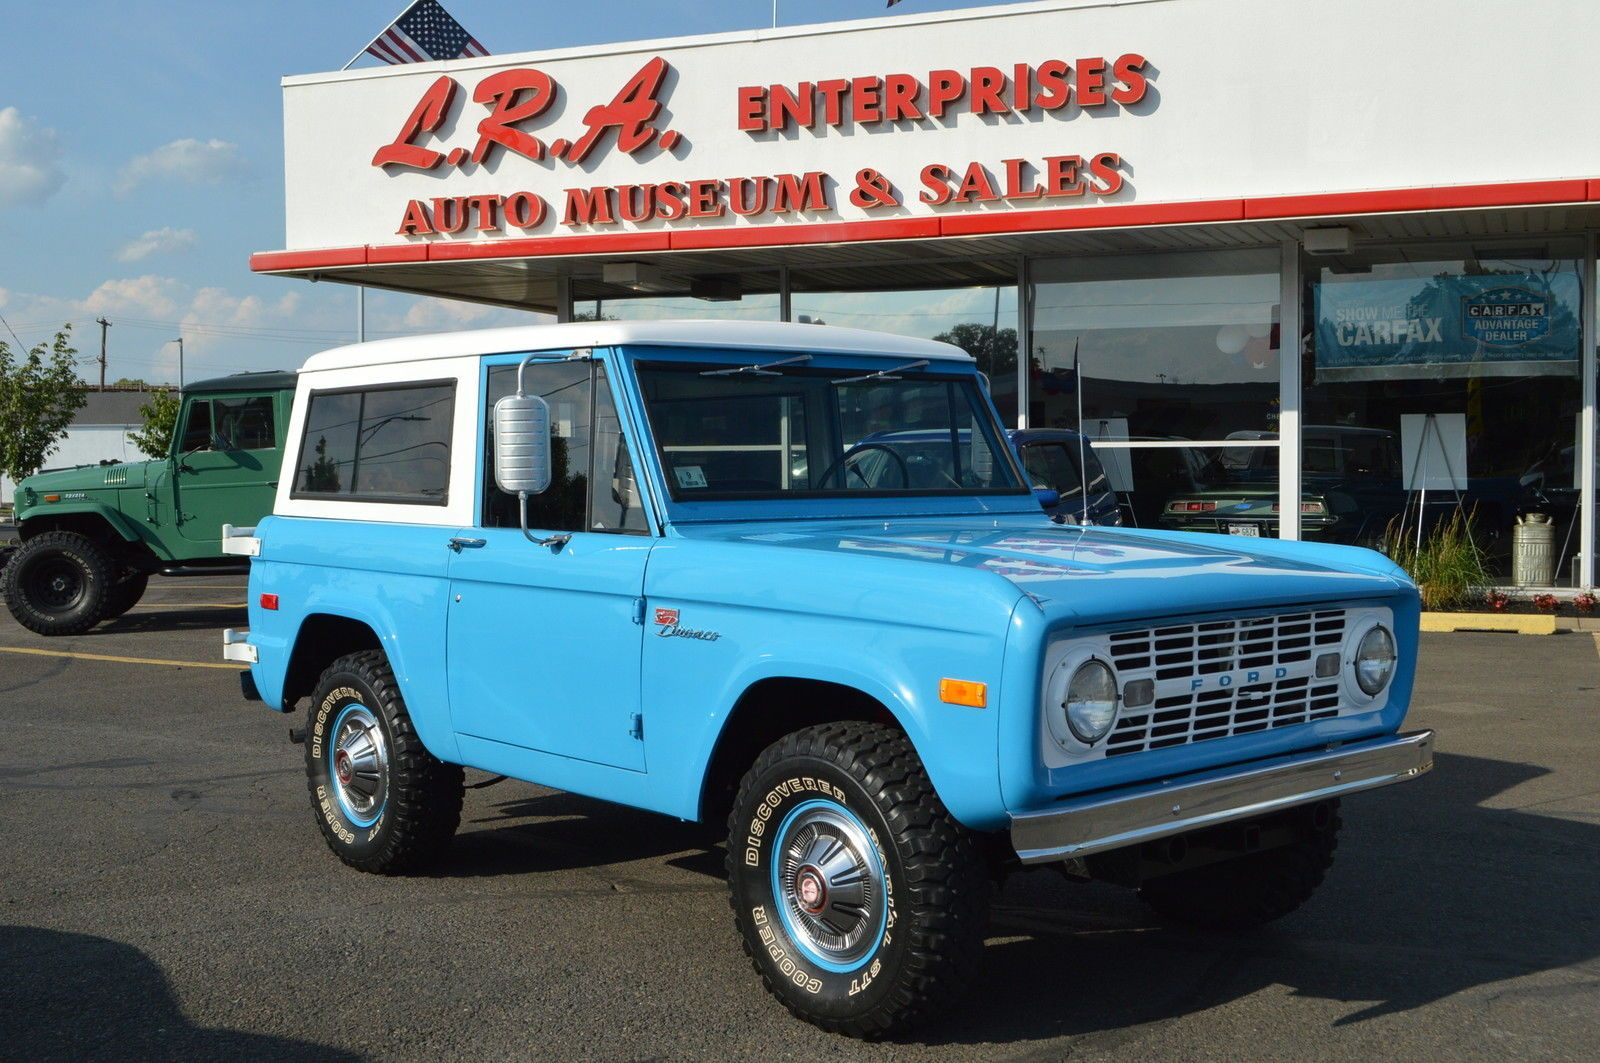 1974 Ford Bronco EXPLORER eBay Ford bronco, Ford, Jeep